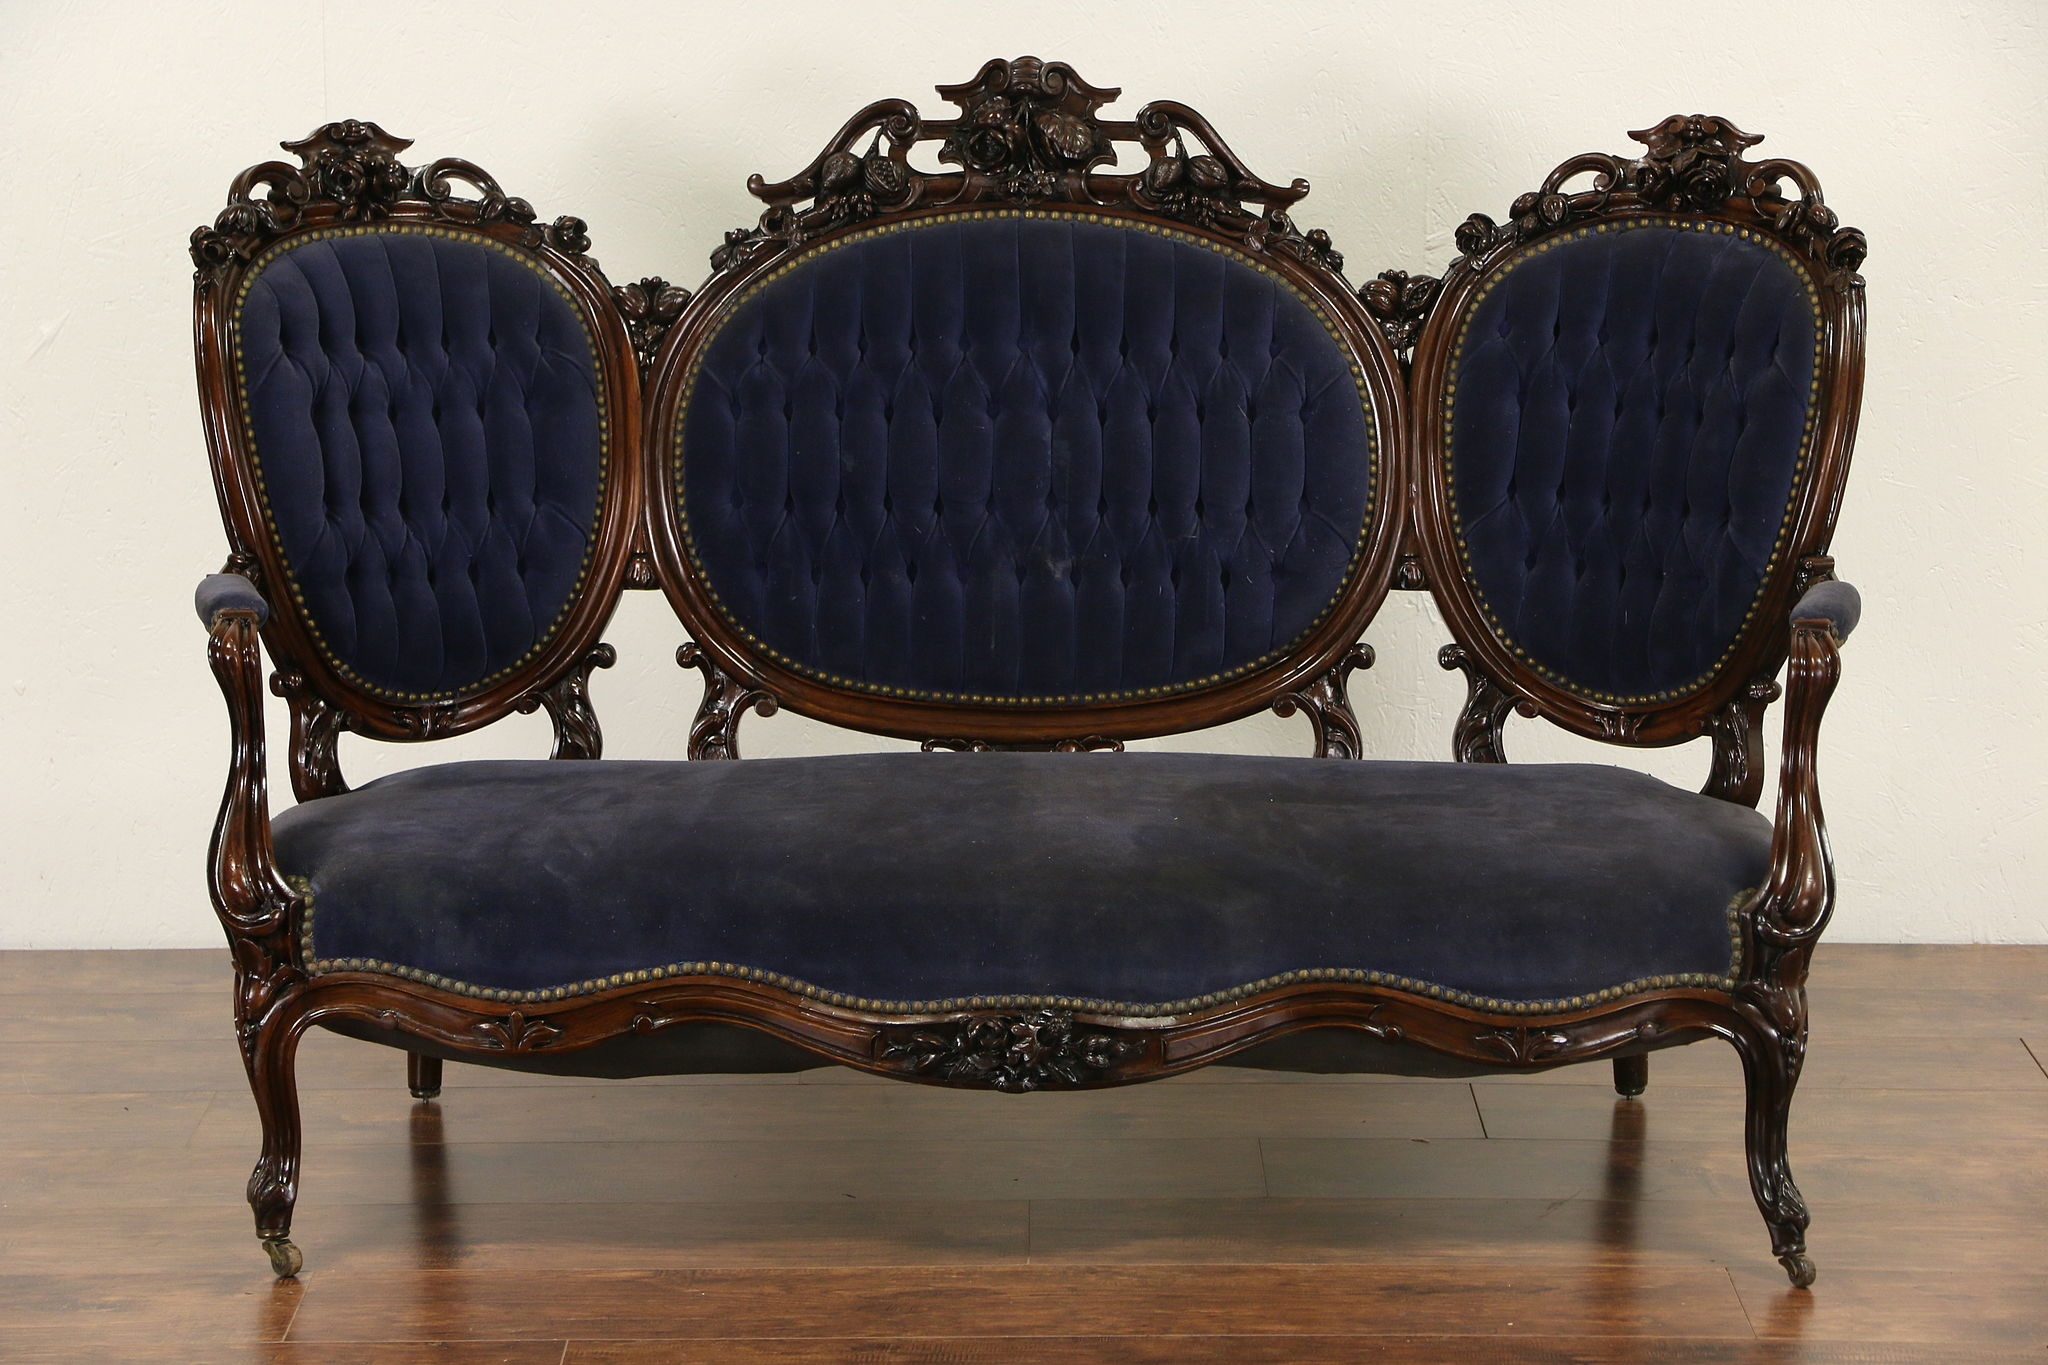 antique french sofa ebay curvy sold victorian hand carved rosewood 1860 39s